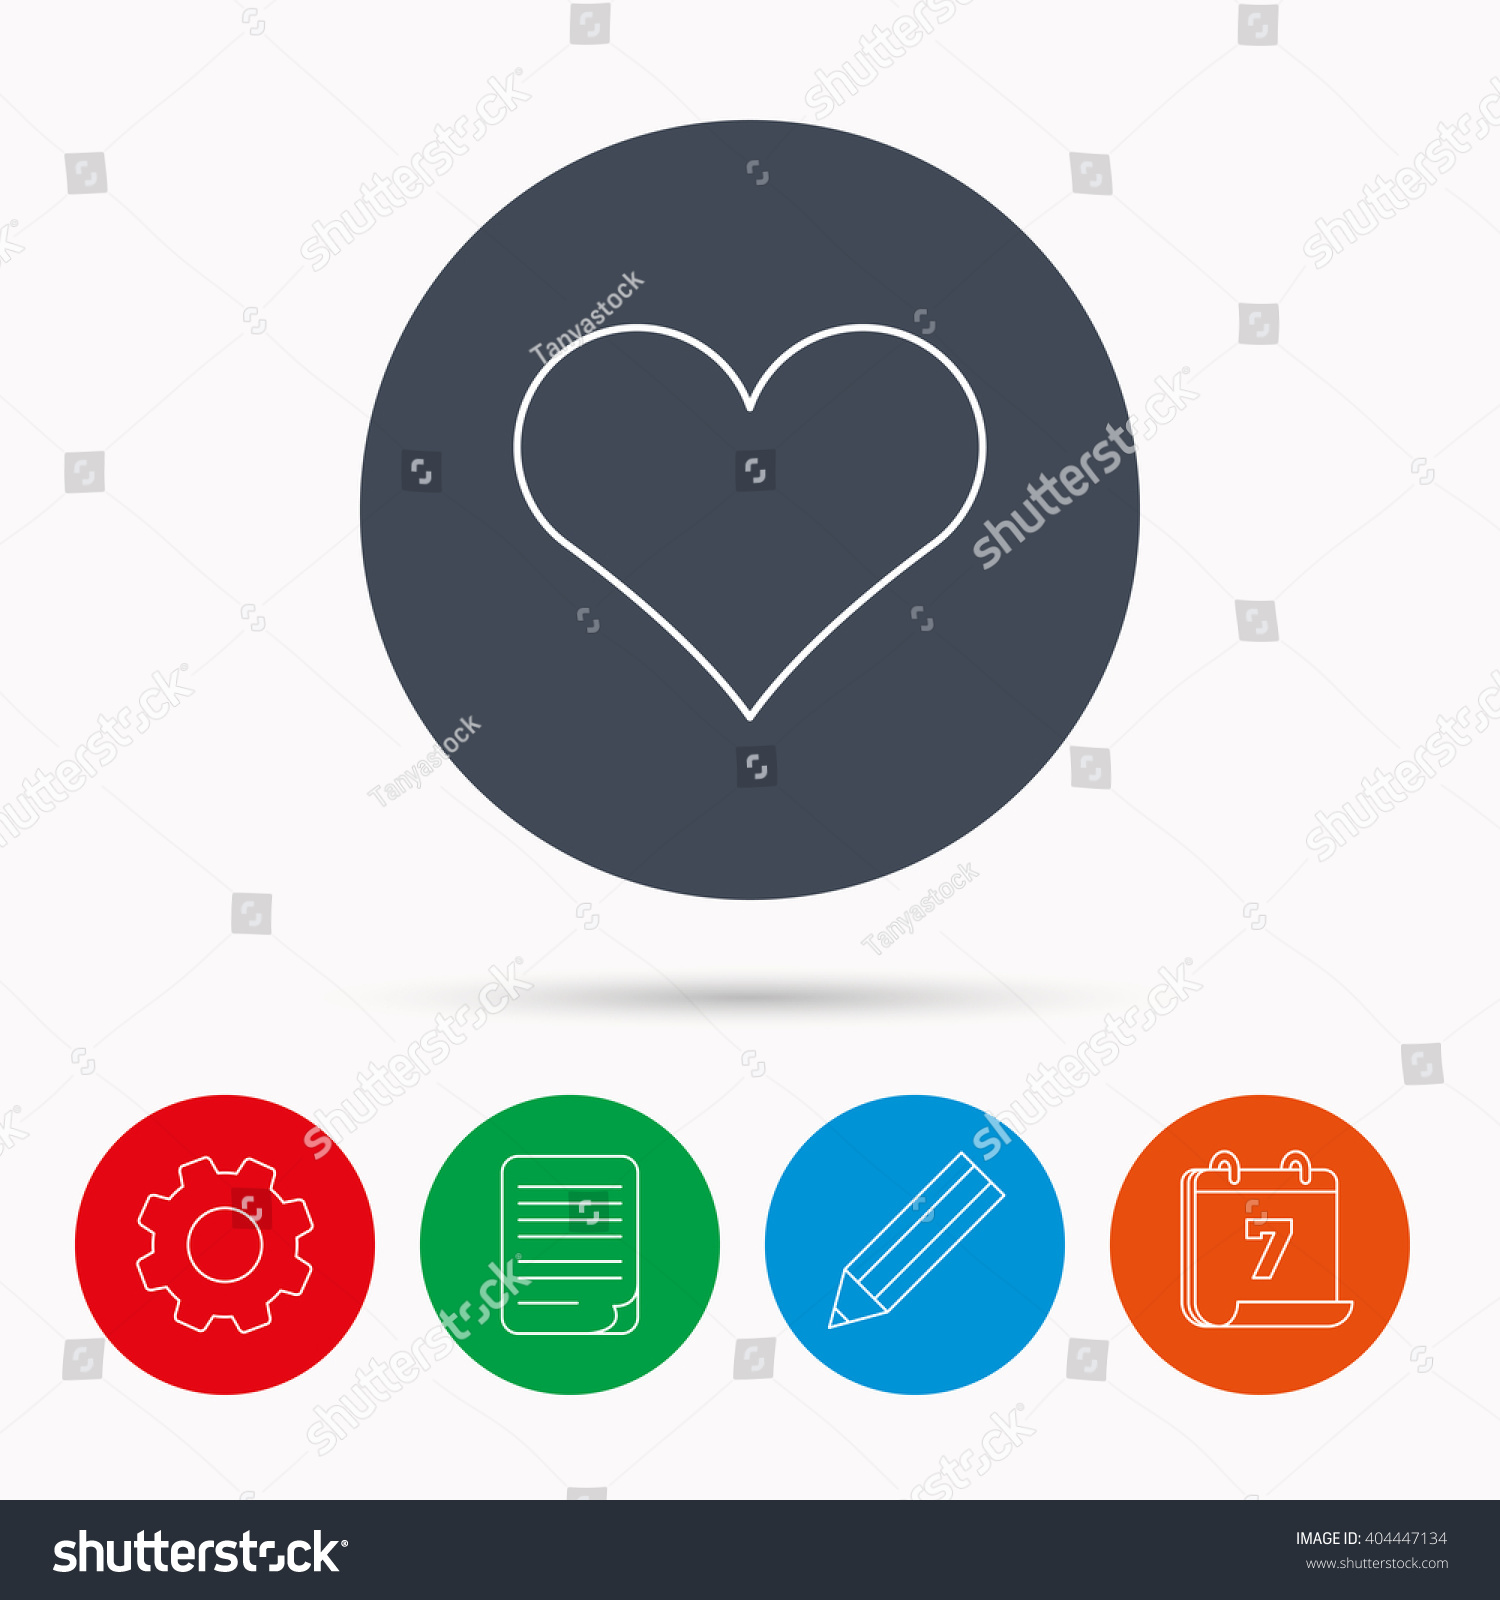 Heart Icon Love Sign Life Symbol Stock Vector 404447134 Shutterstock